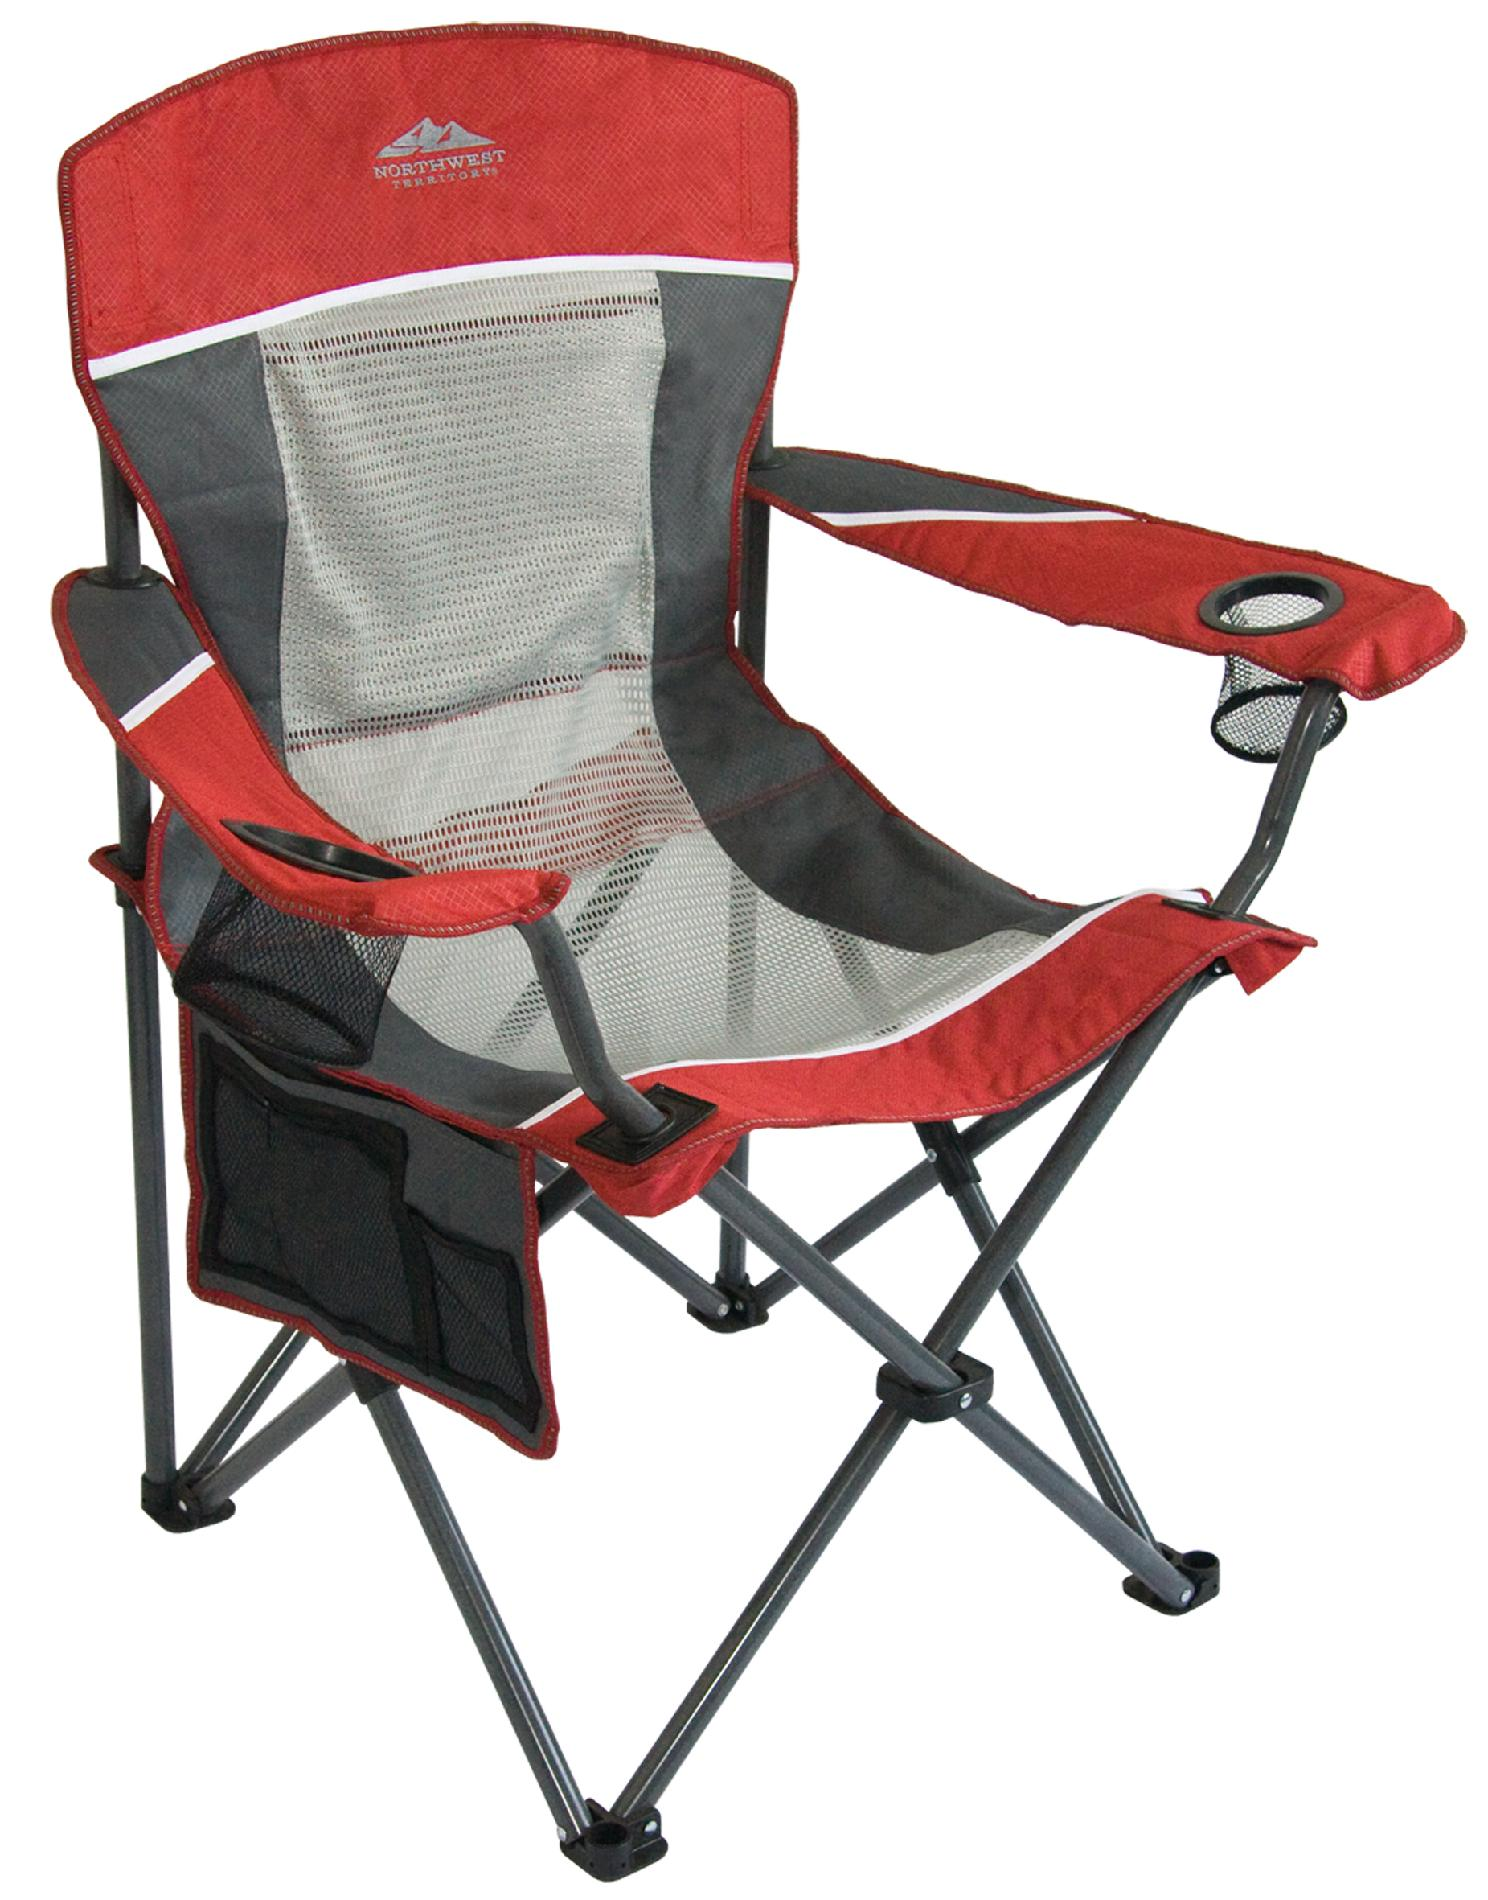 everywhere chair coupon code 8 dining table set big boy xl mesh red comfortable seating now